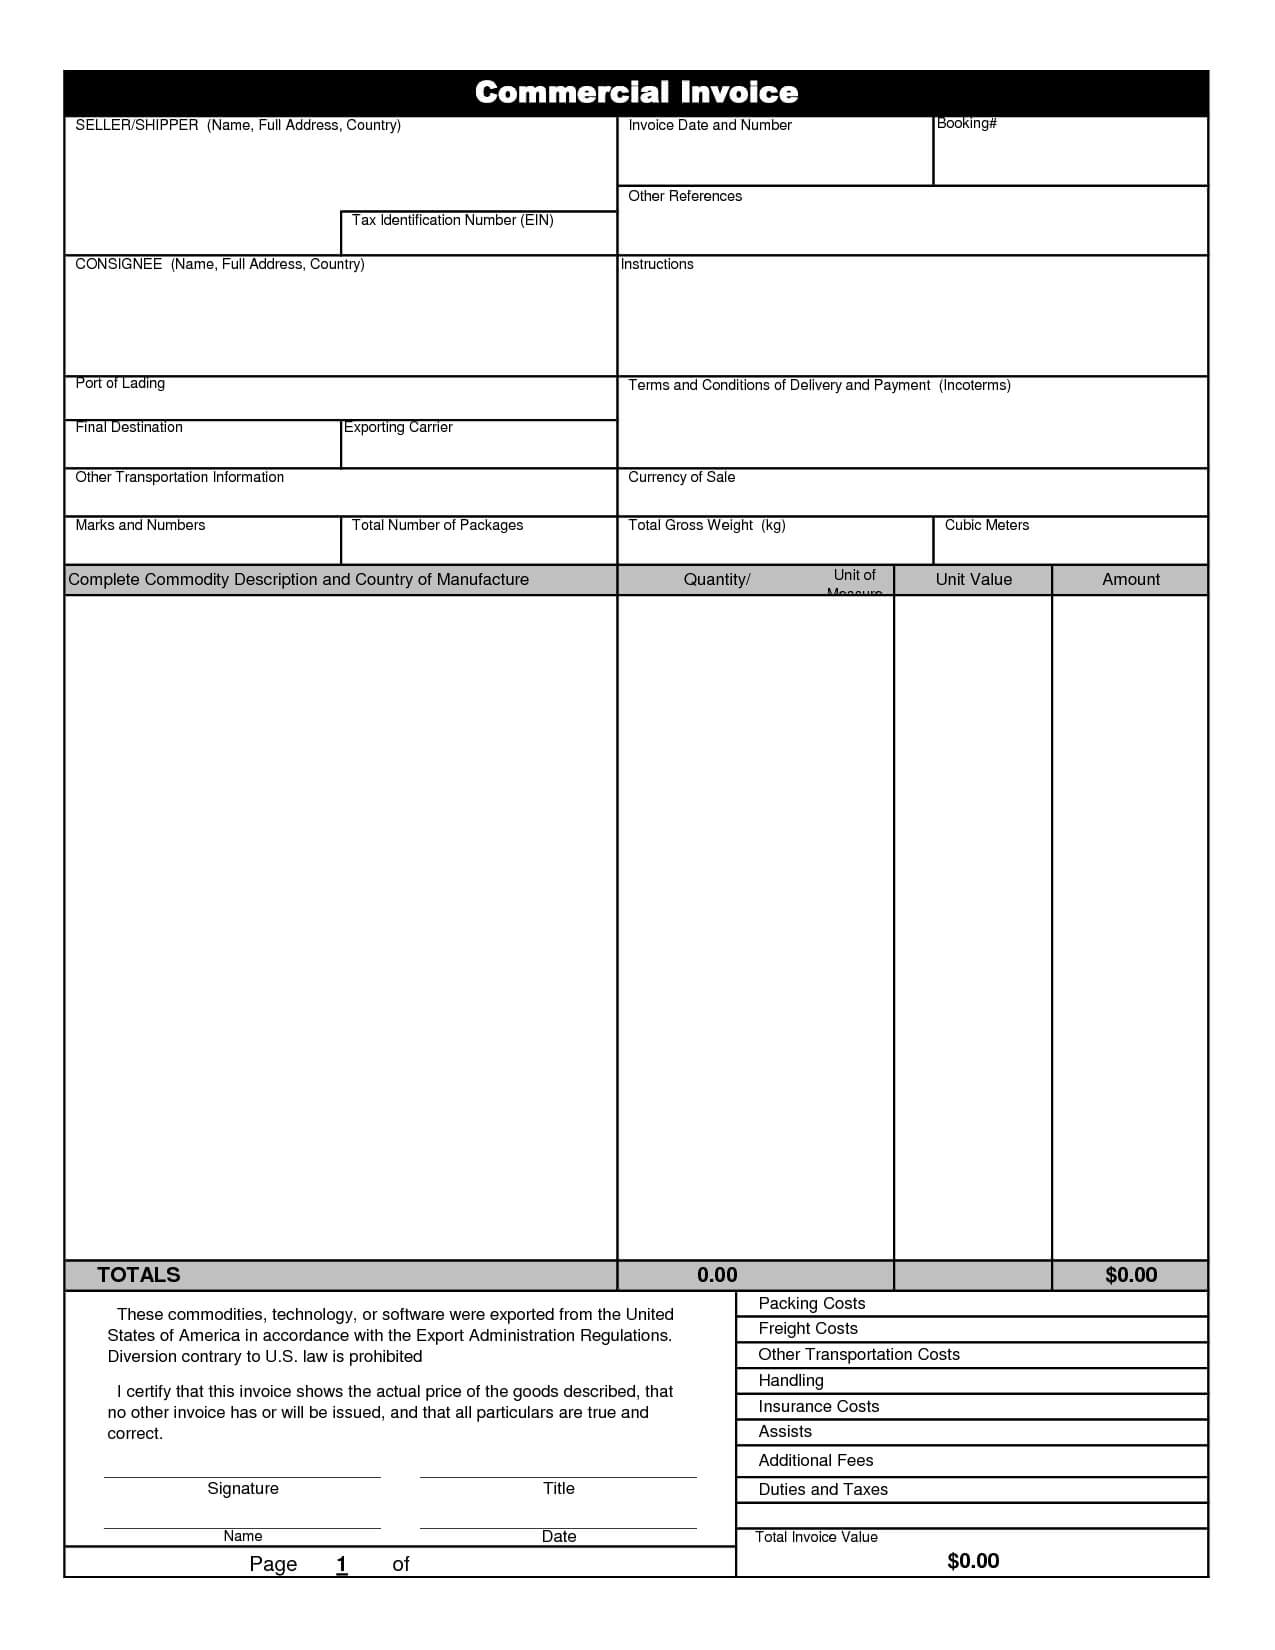 Commercial Invoice Template Excel | Invoice Example With Regard To Commercial Invoice Template Word Doc